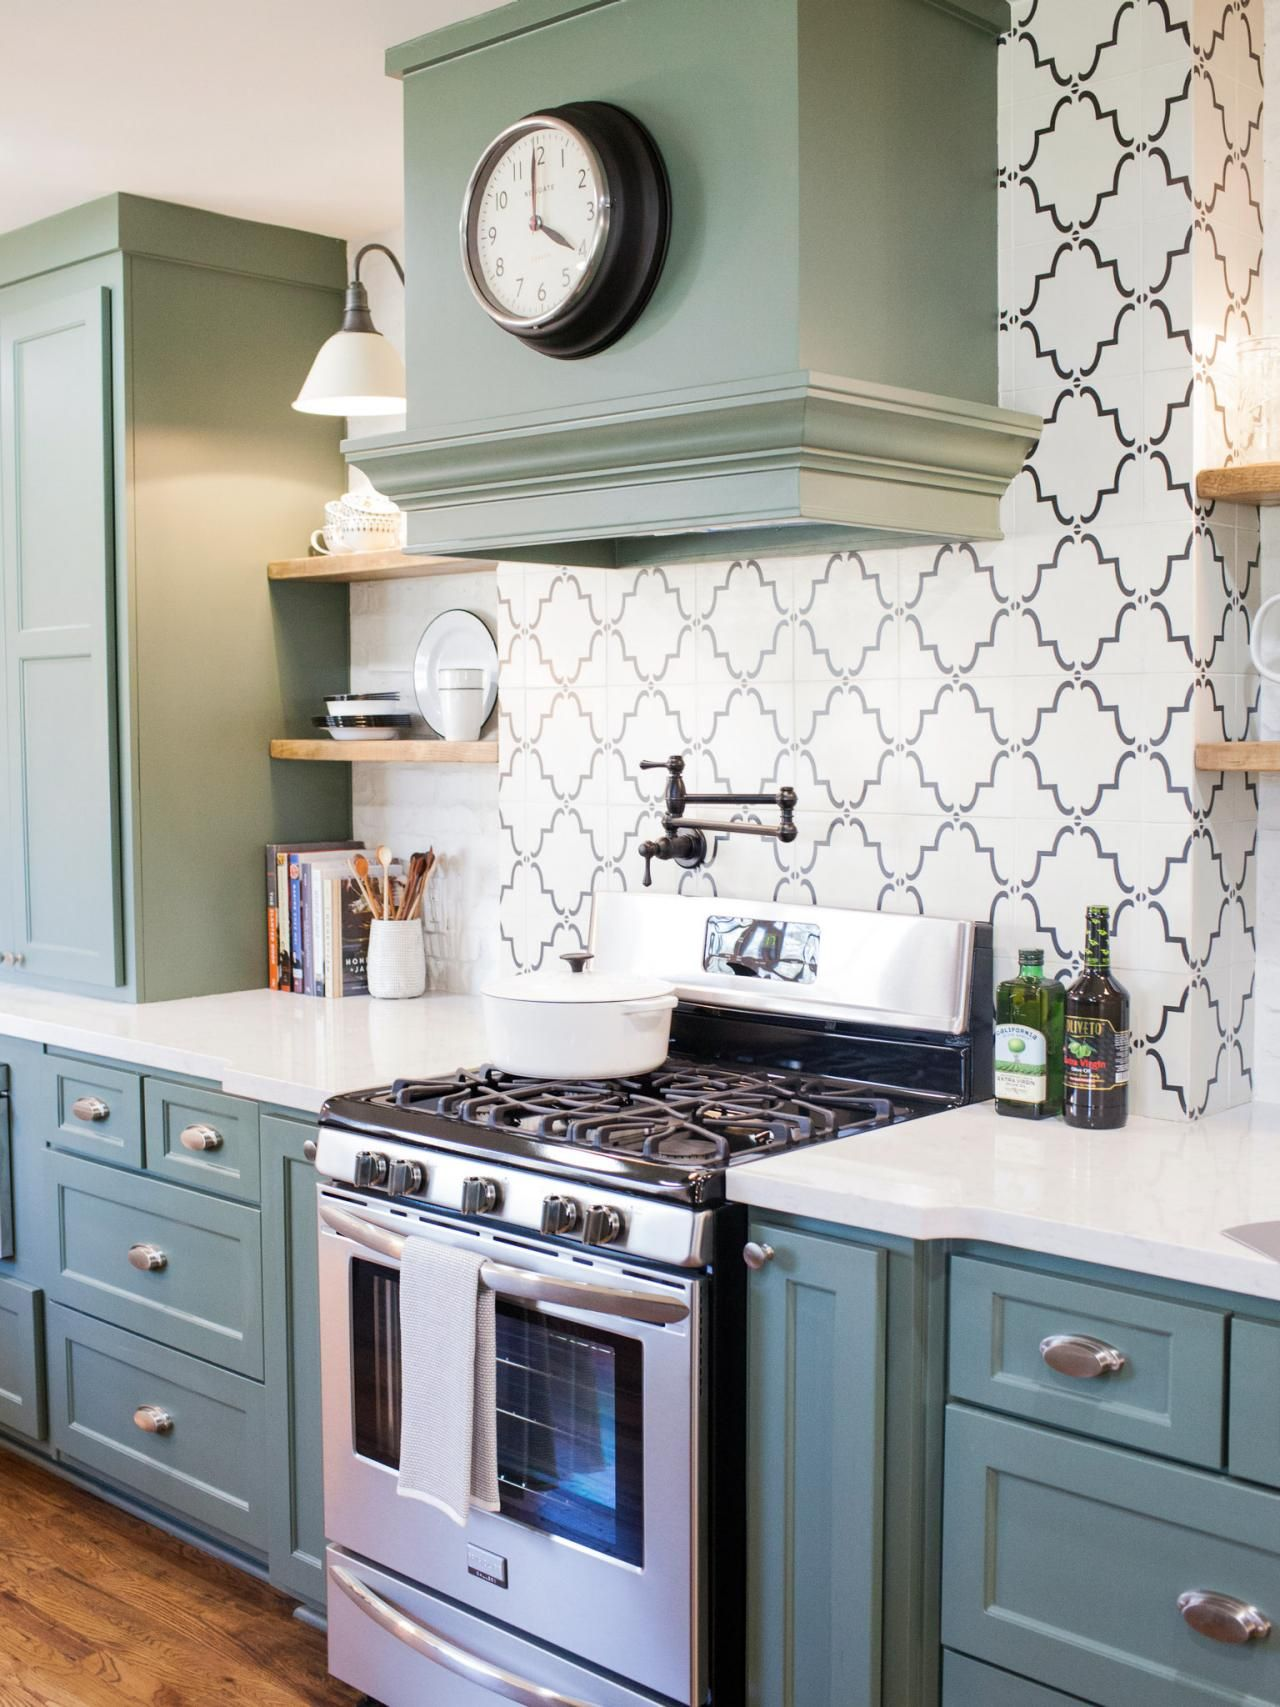 Fixer upper kitchen cabinet paint colors - Fixer Upper Kitchen Cabinet Paint Fixer Upper Star Joanna Gaines Knows How To Add Life